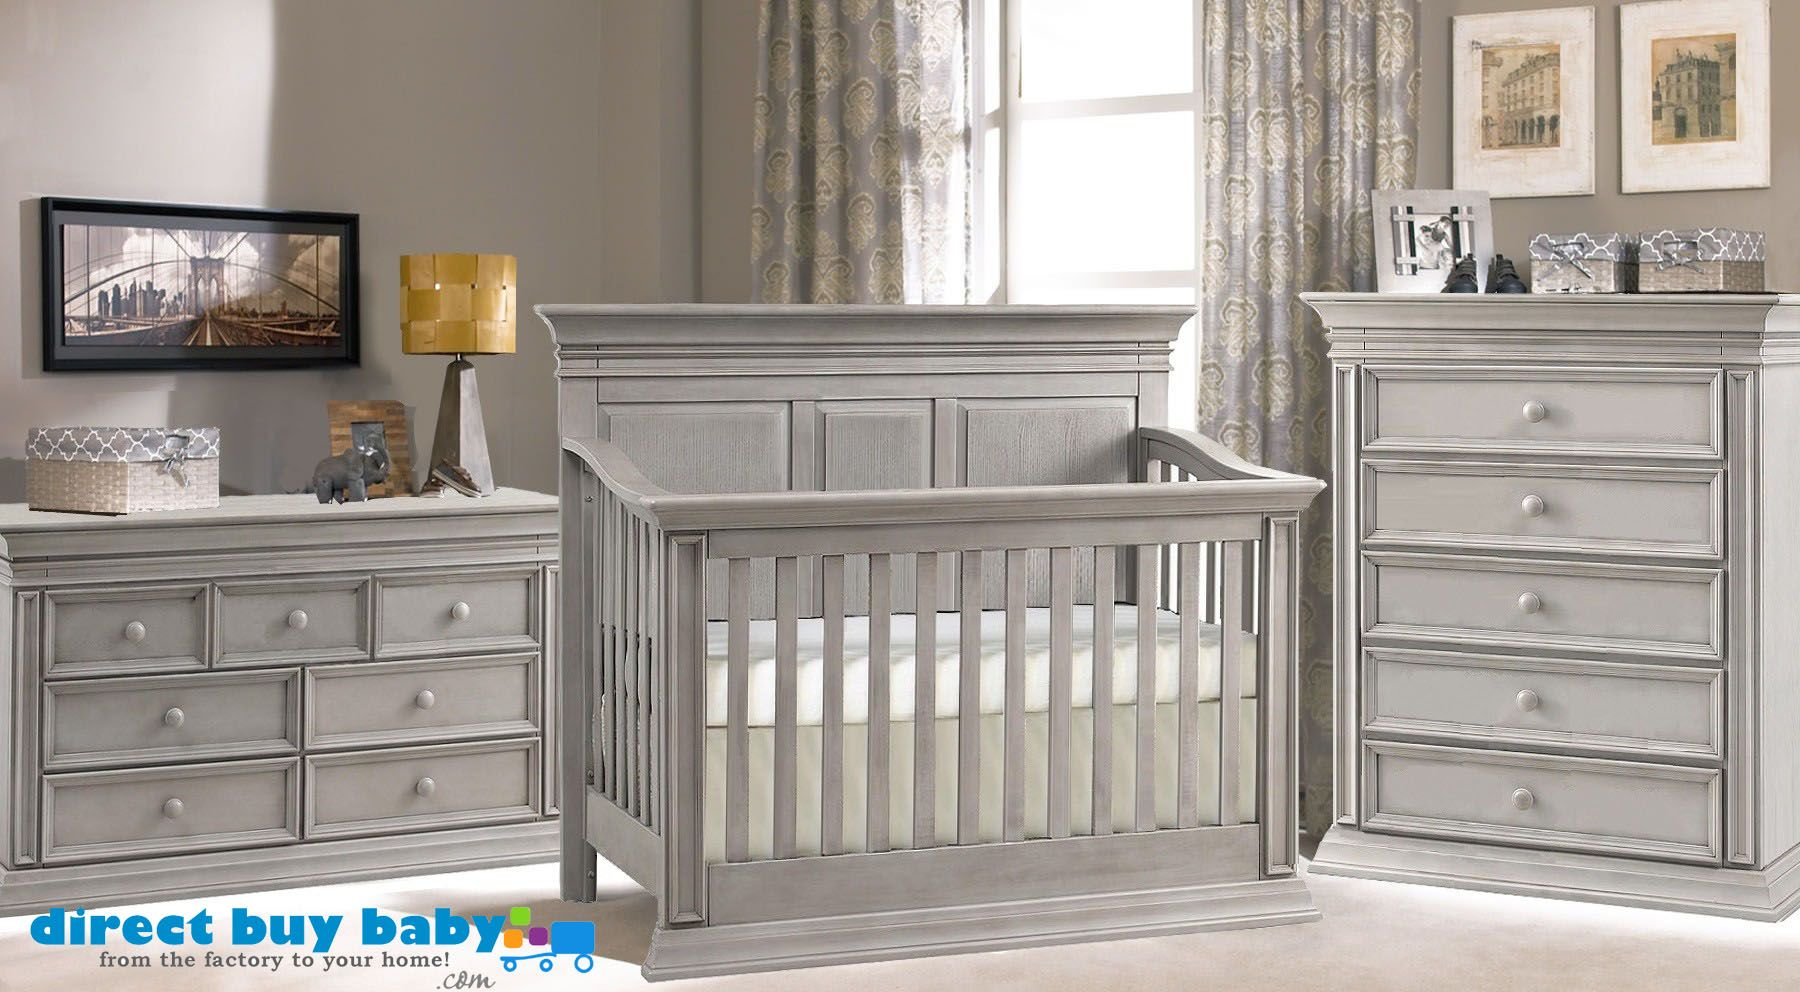 Elegant Distressed Grey Rustic Nursery Set I Direct Baby Chic Venice Convertible Crib